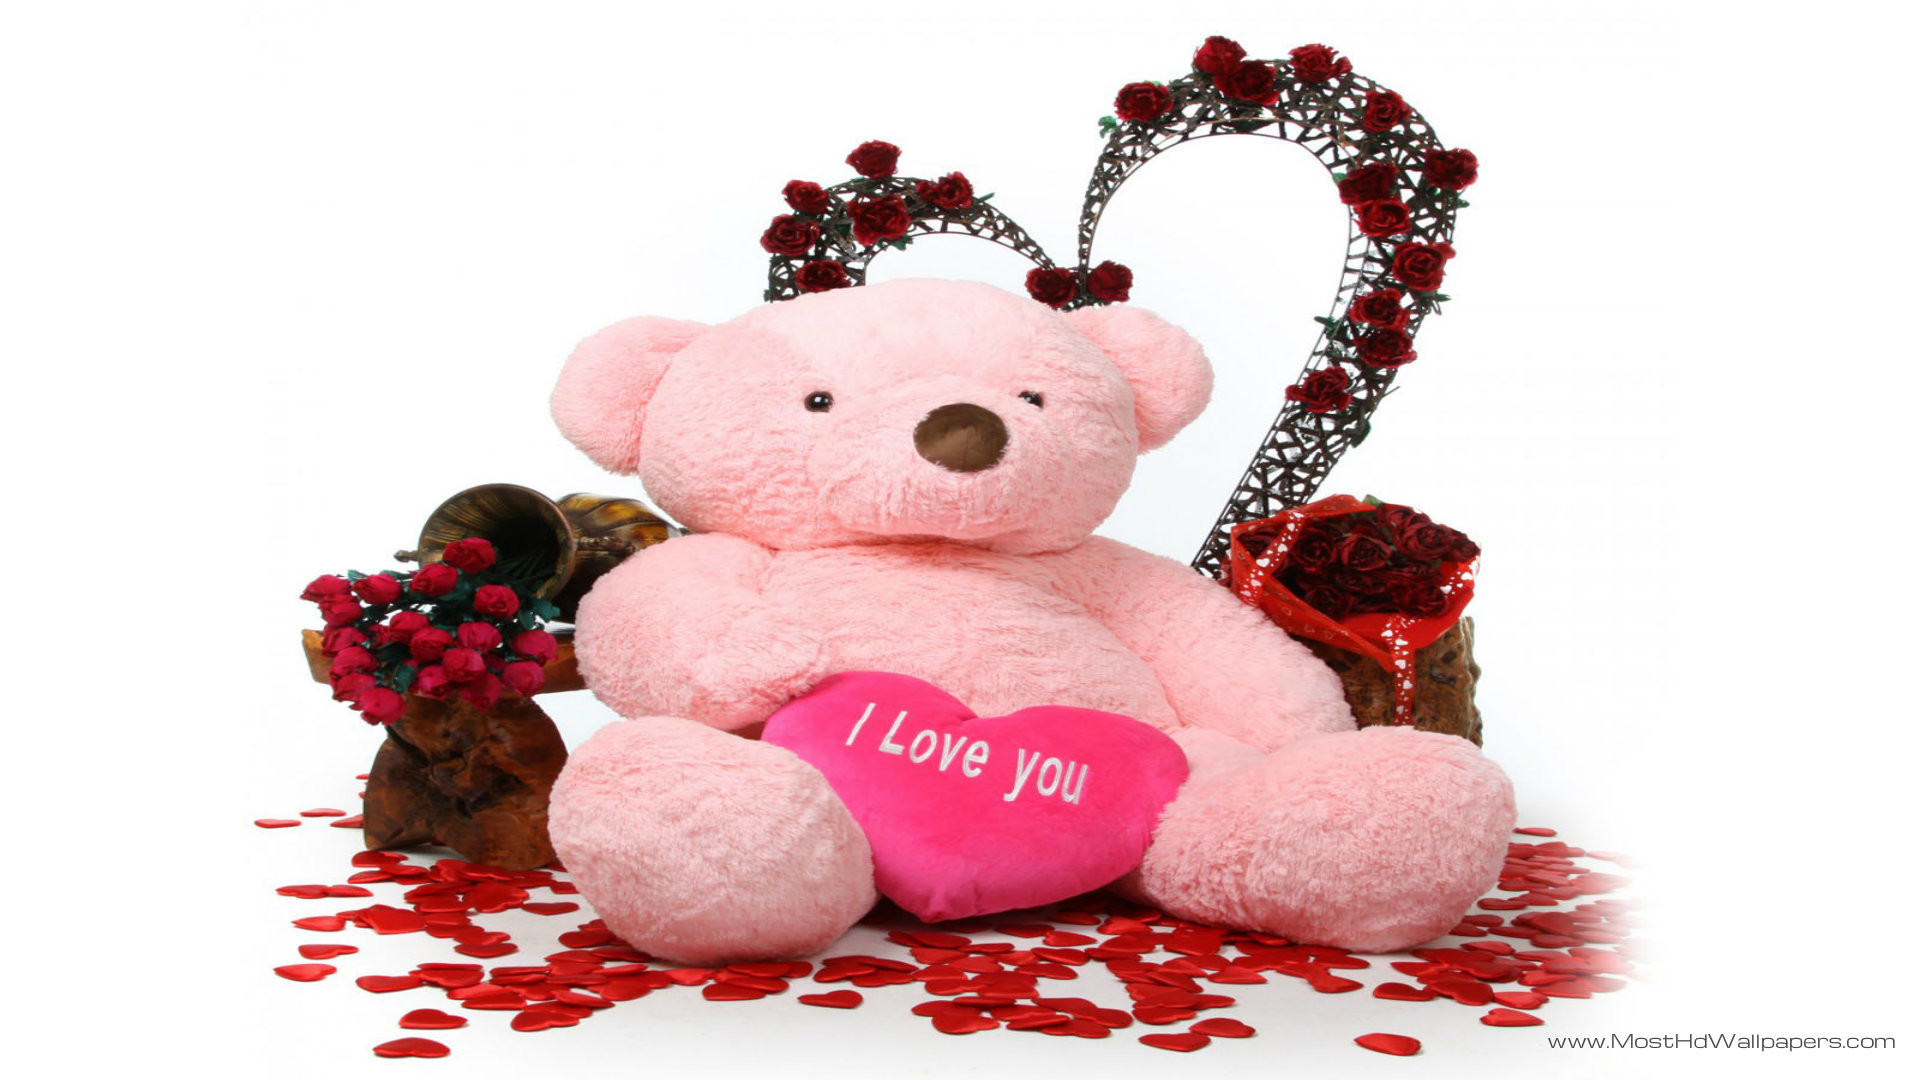 Lovely And Beautiful Teddy Bear Wallpapers: Teddy Bear Wallpaper (58+ Images